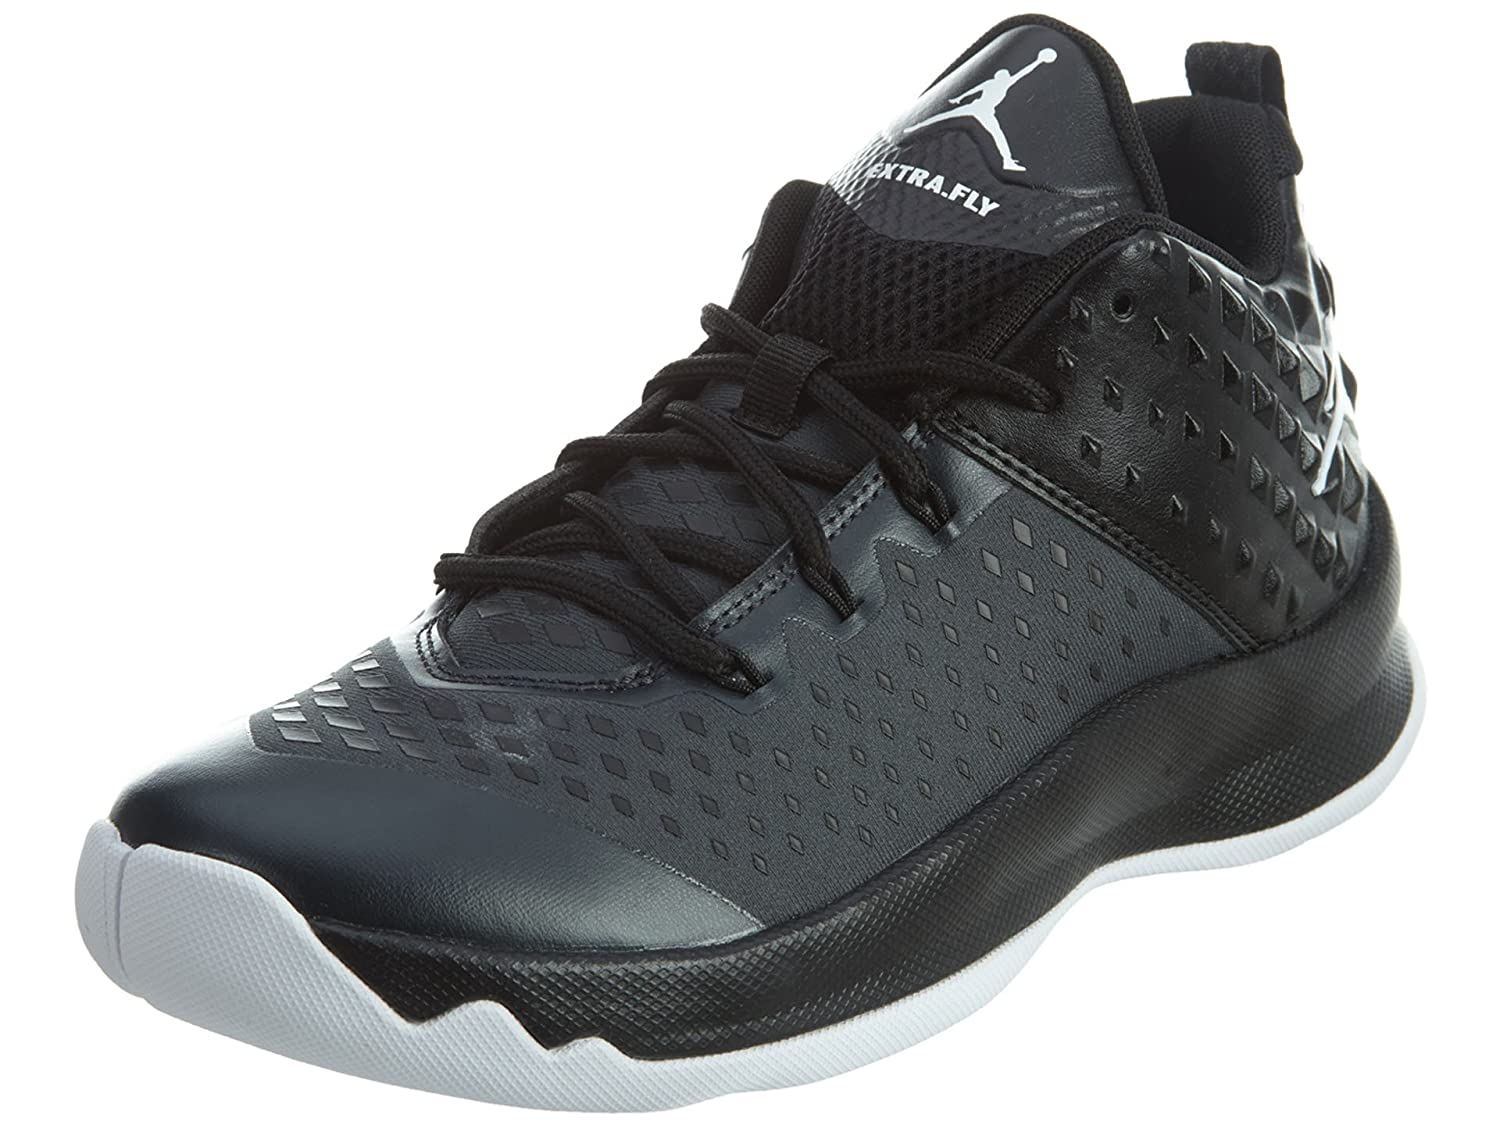 newest 130d2 19c3e Amazon.com  Jordan Extra Fly Big Kids Style 854550-001 Size 6 Y US   Sneakers